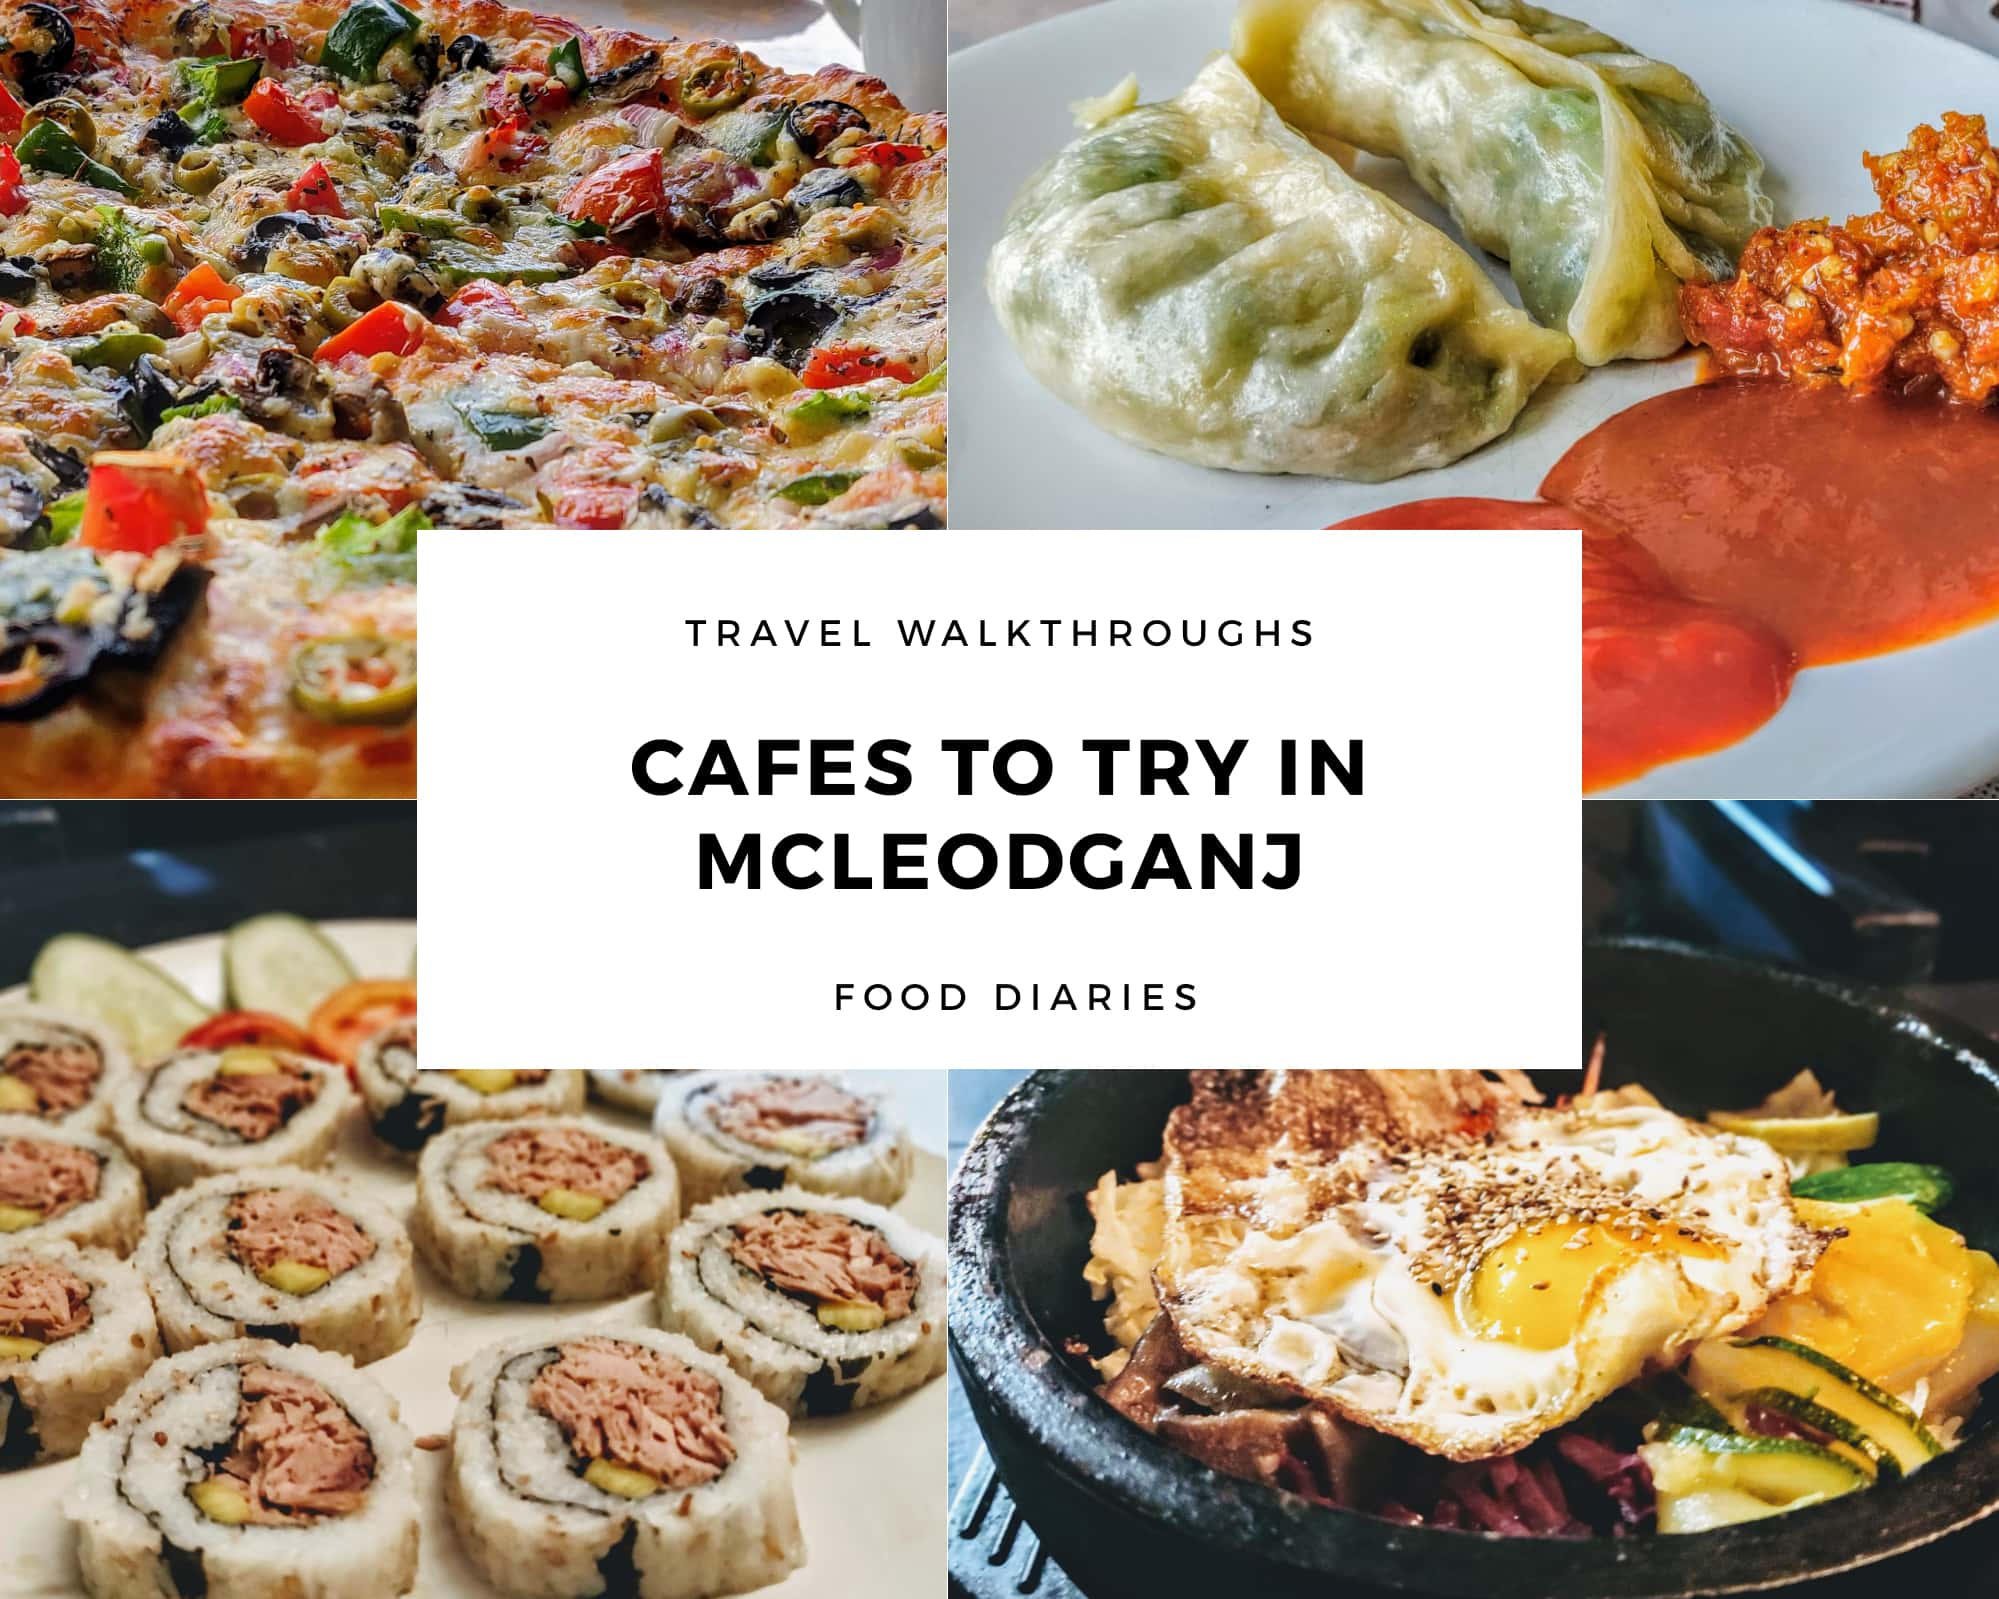 Cafes to try in Mcleodganj